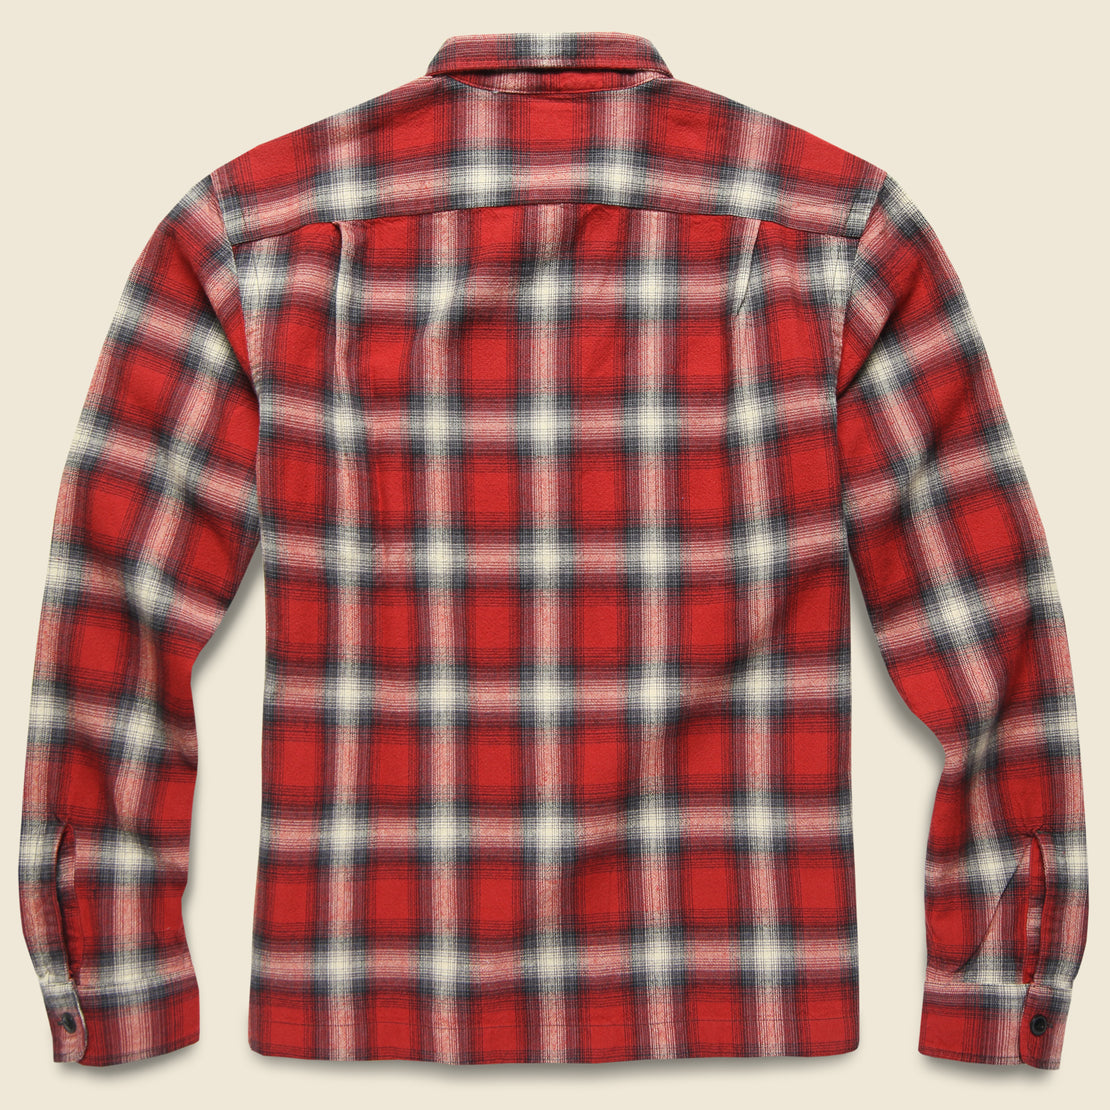 Monterey Ombre Plaid Flannel - Red/Black